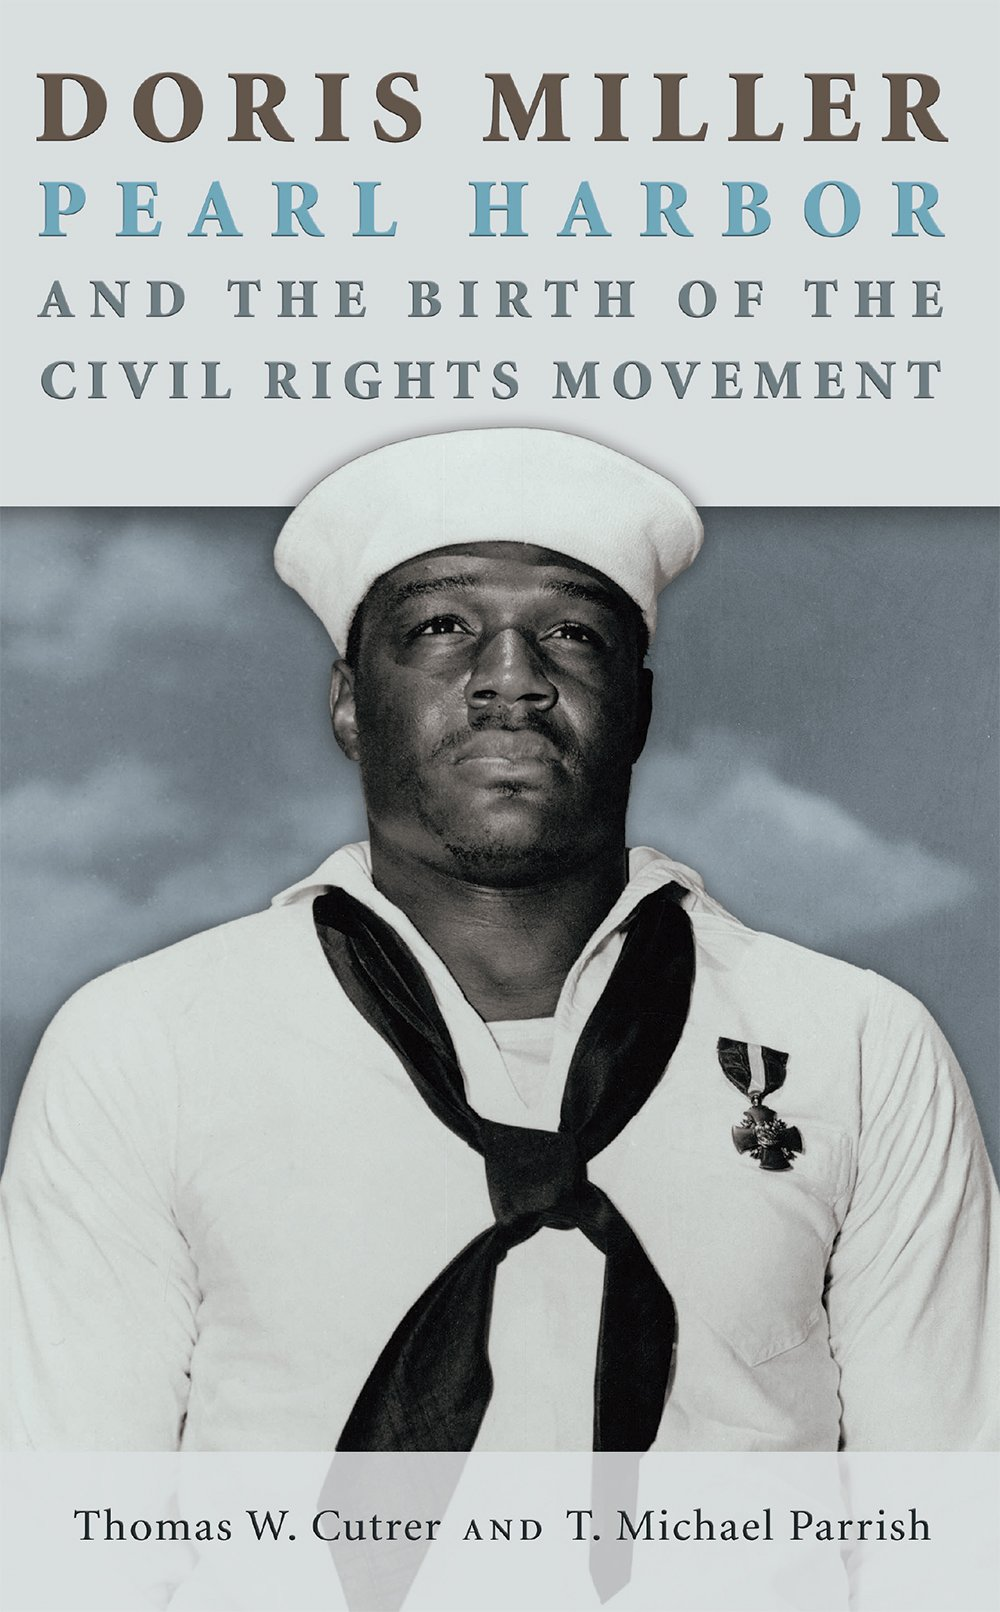 Download Doris Miller, Pearl Harbor, and the Birth of the Civil Rights Movement (Williams-Ford Texas A&M University Military History Series) PDF